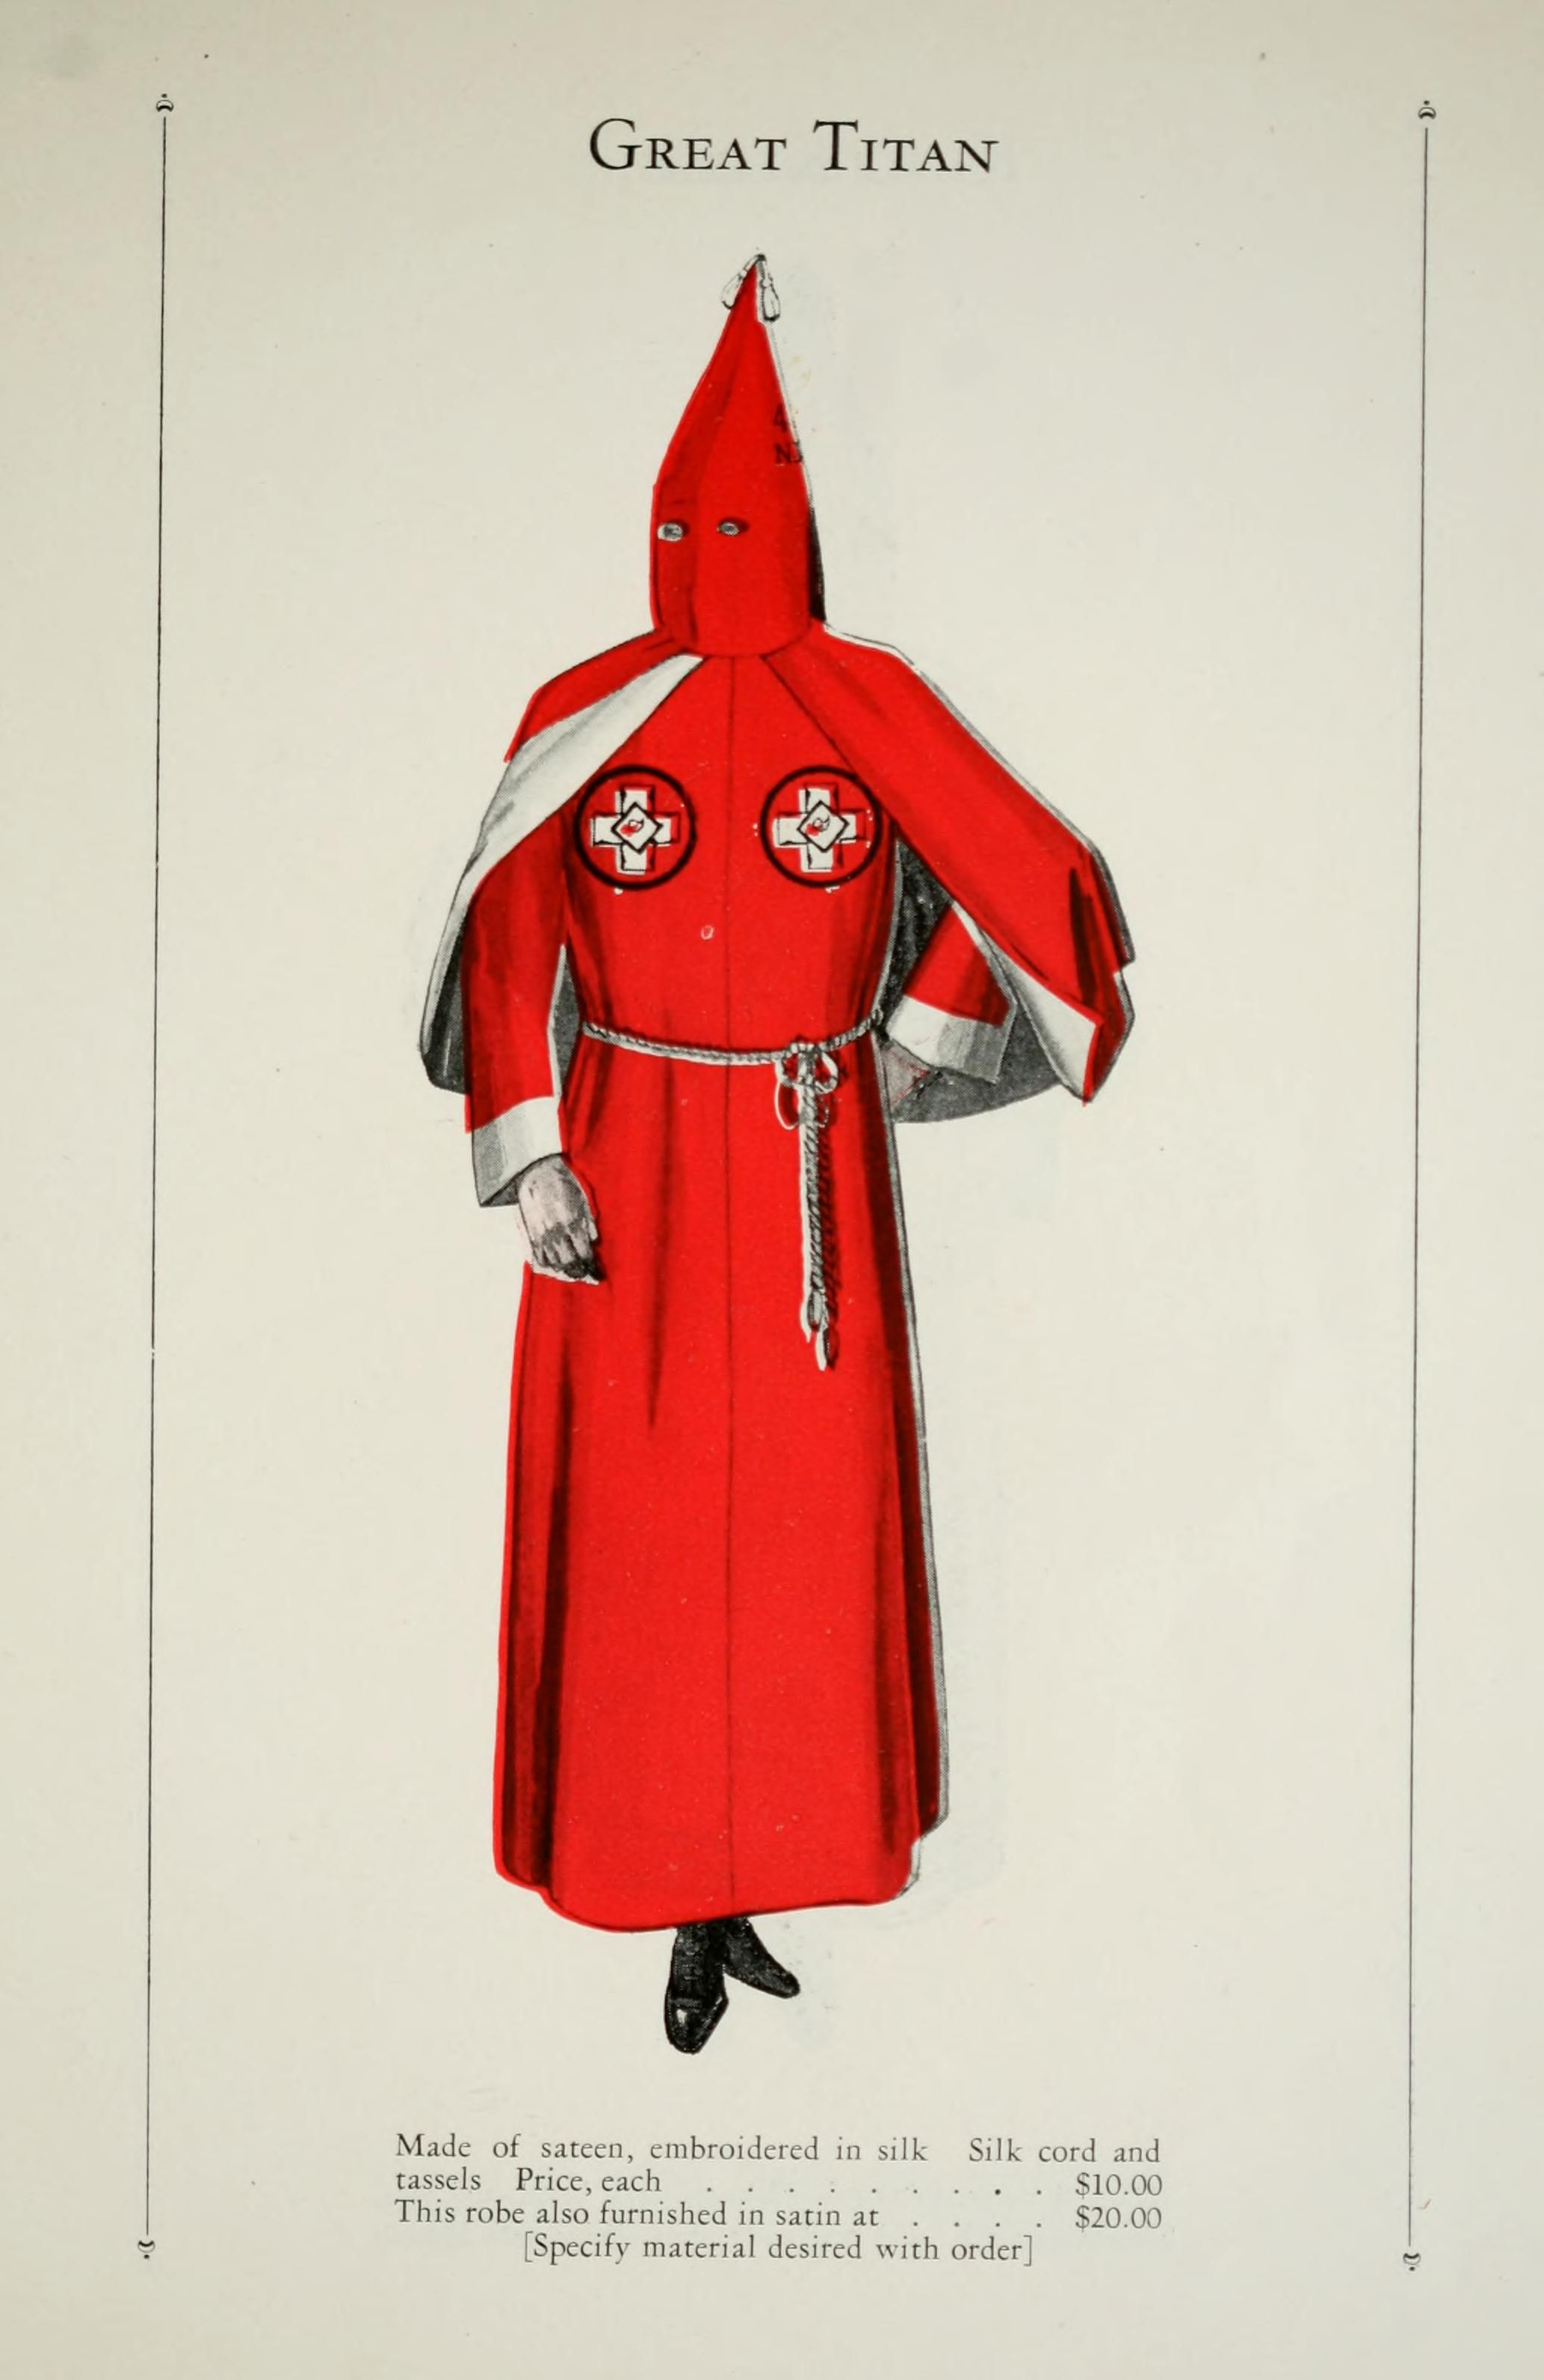 your official ku klux klan robe catalog dragon ranges and catalog catalogue of offical robes and banners by the ku klux klan retronaut retronaut see